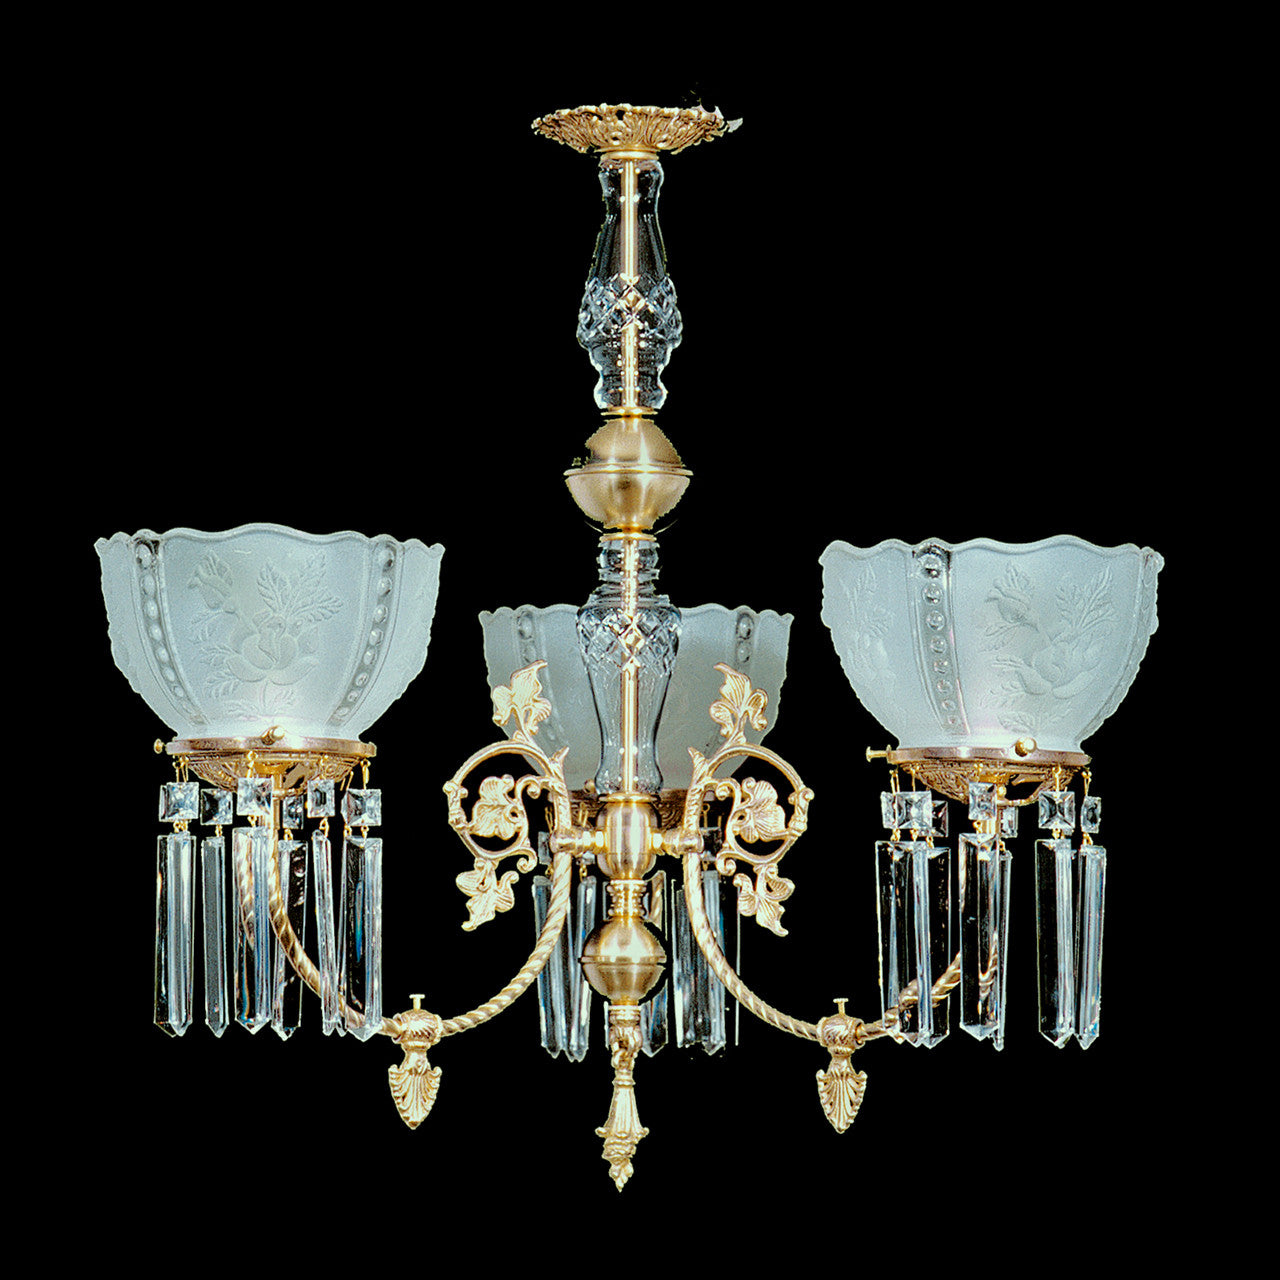 Oliver 3 Light Brass And Crystal Victorian Chandelier 25 X 23